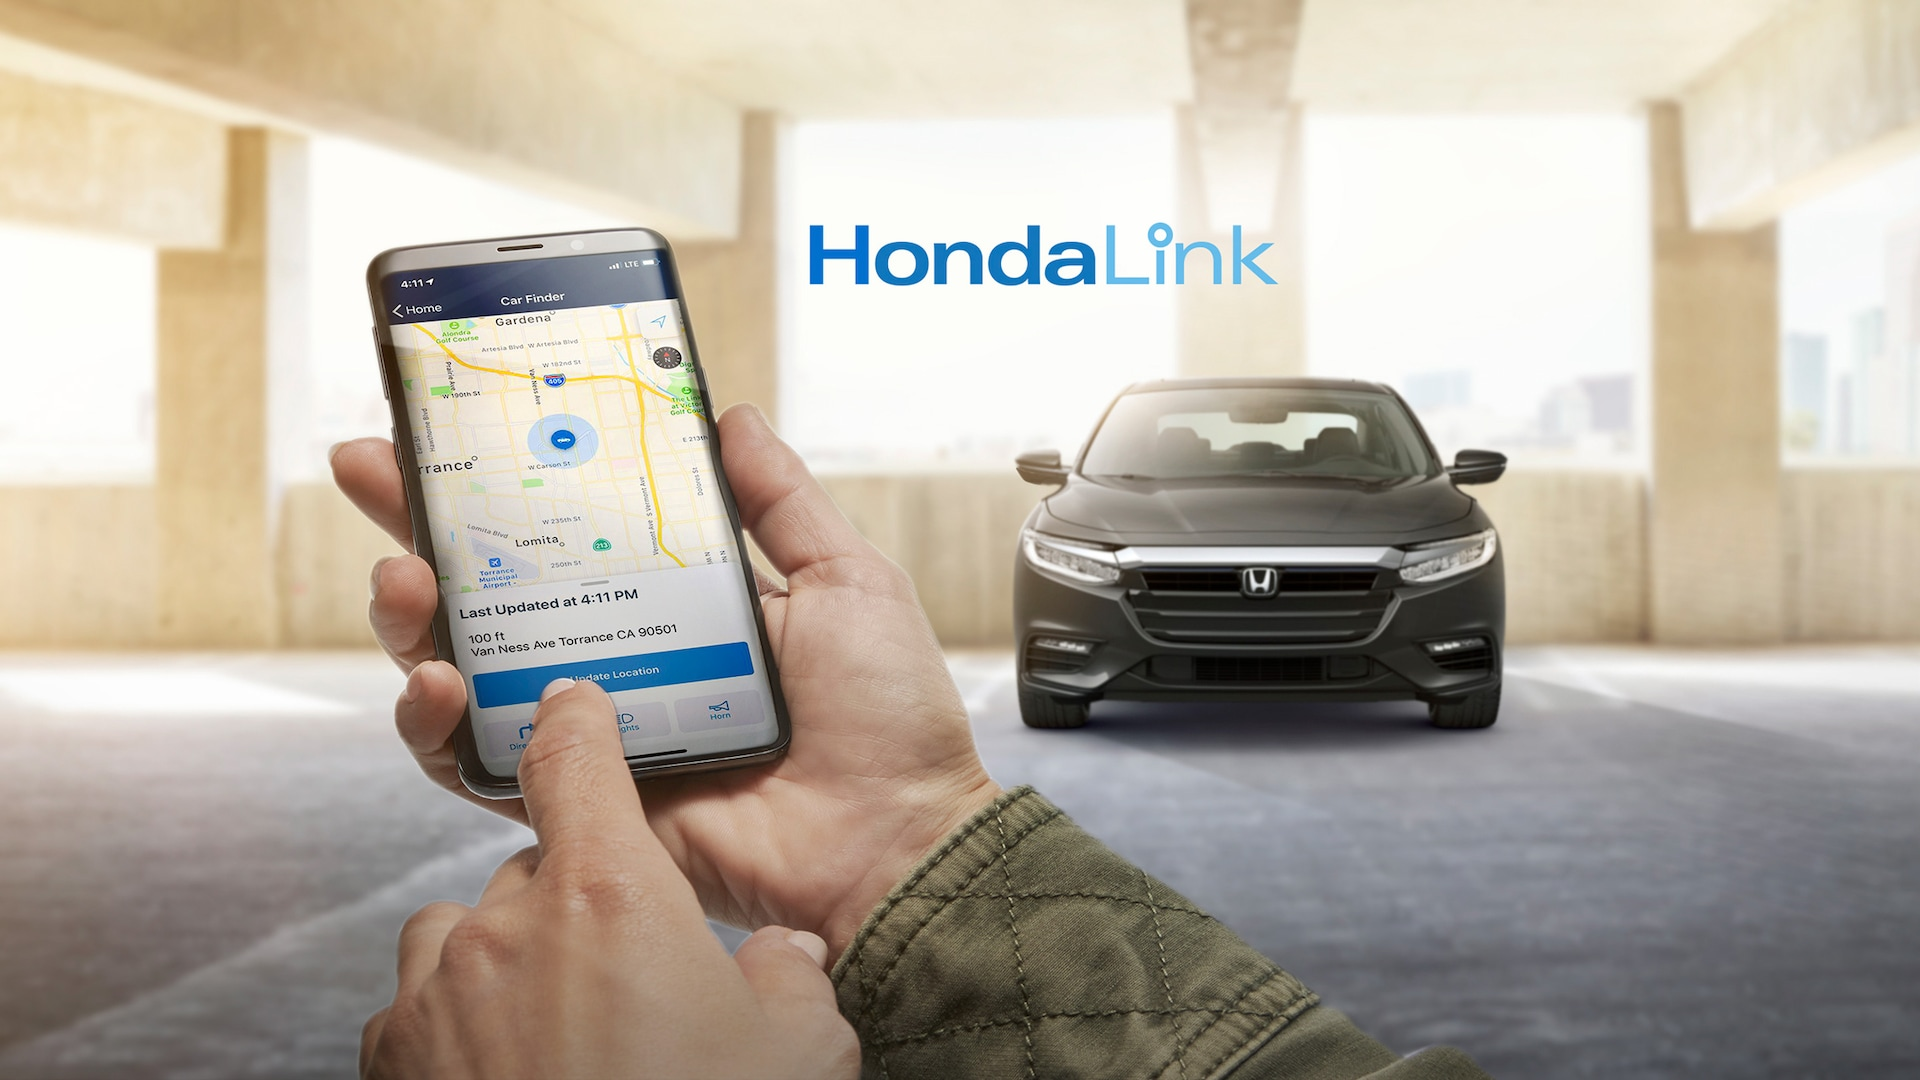 A man's hands holding a smartphone with HondaLink® screen visible, and Honda Insight parked in the background.